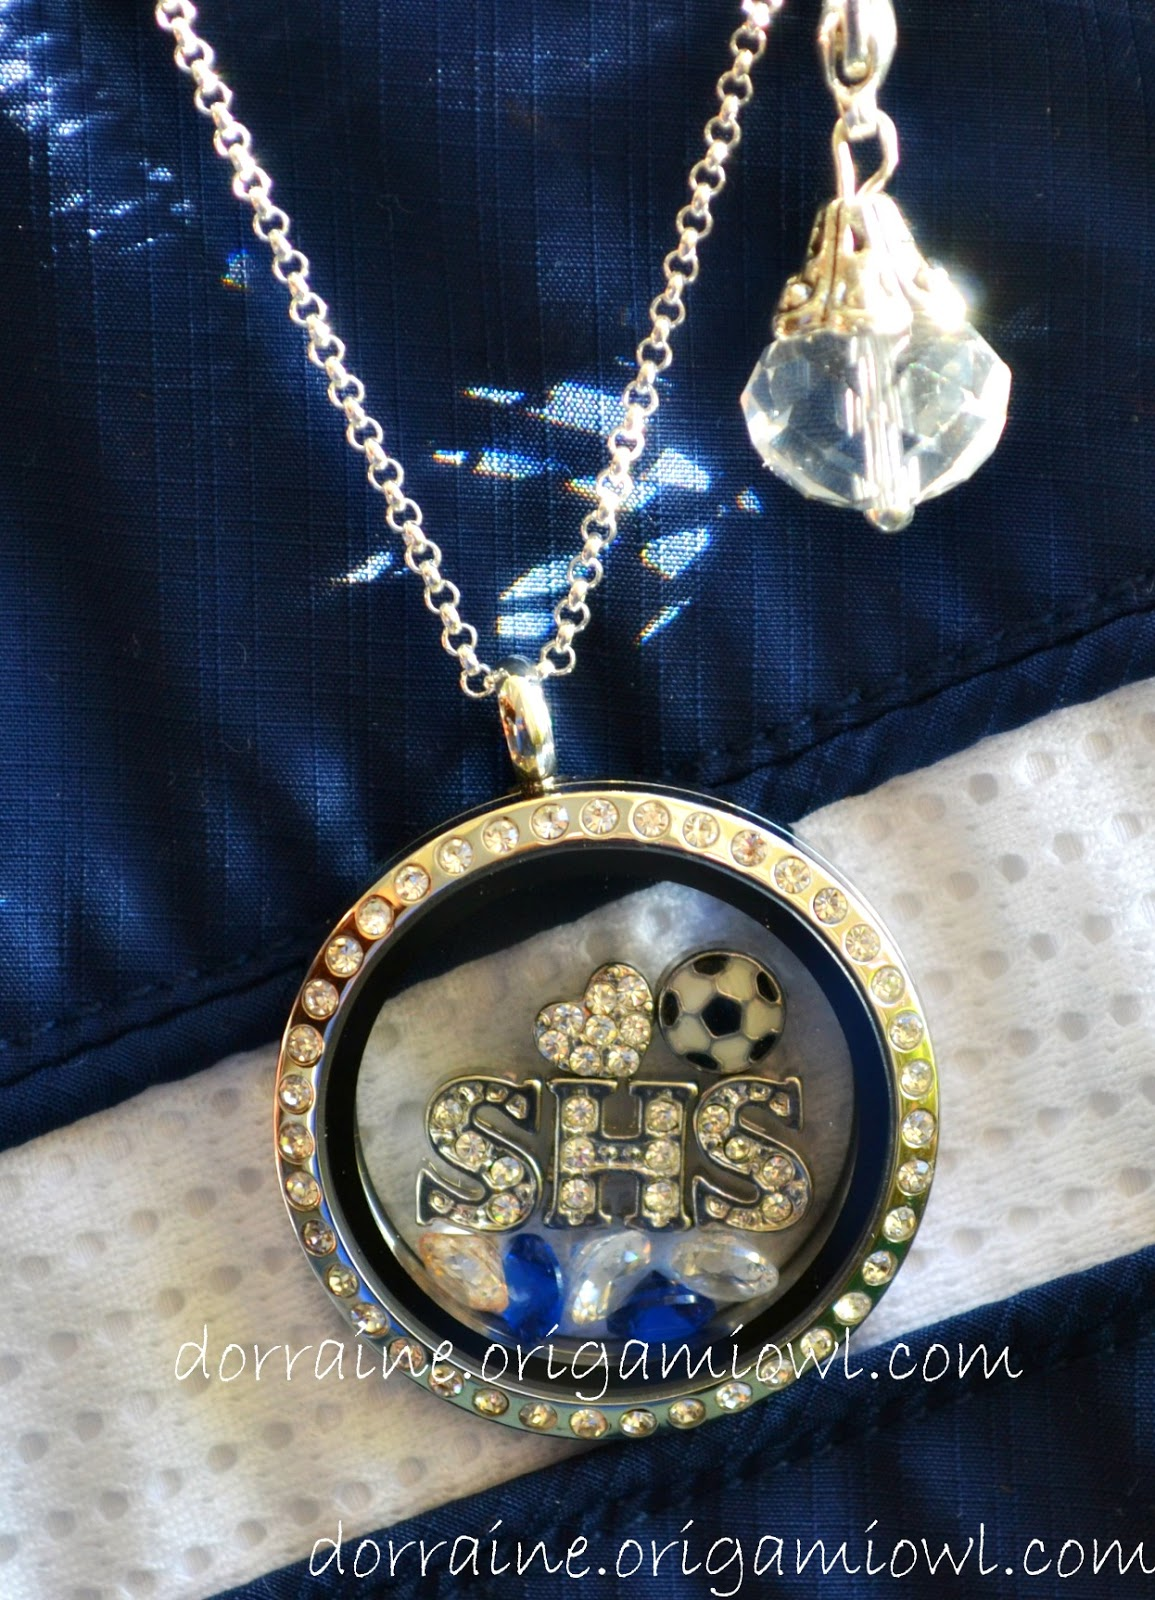 The Lavender Tub: Origami Owl Living Lockets - photo#42